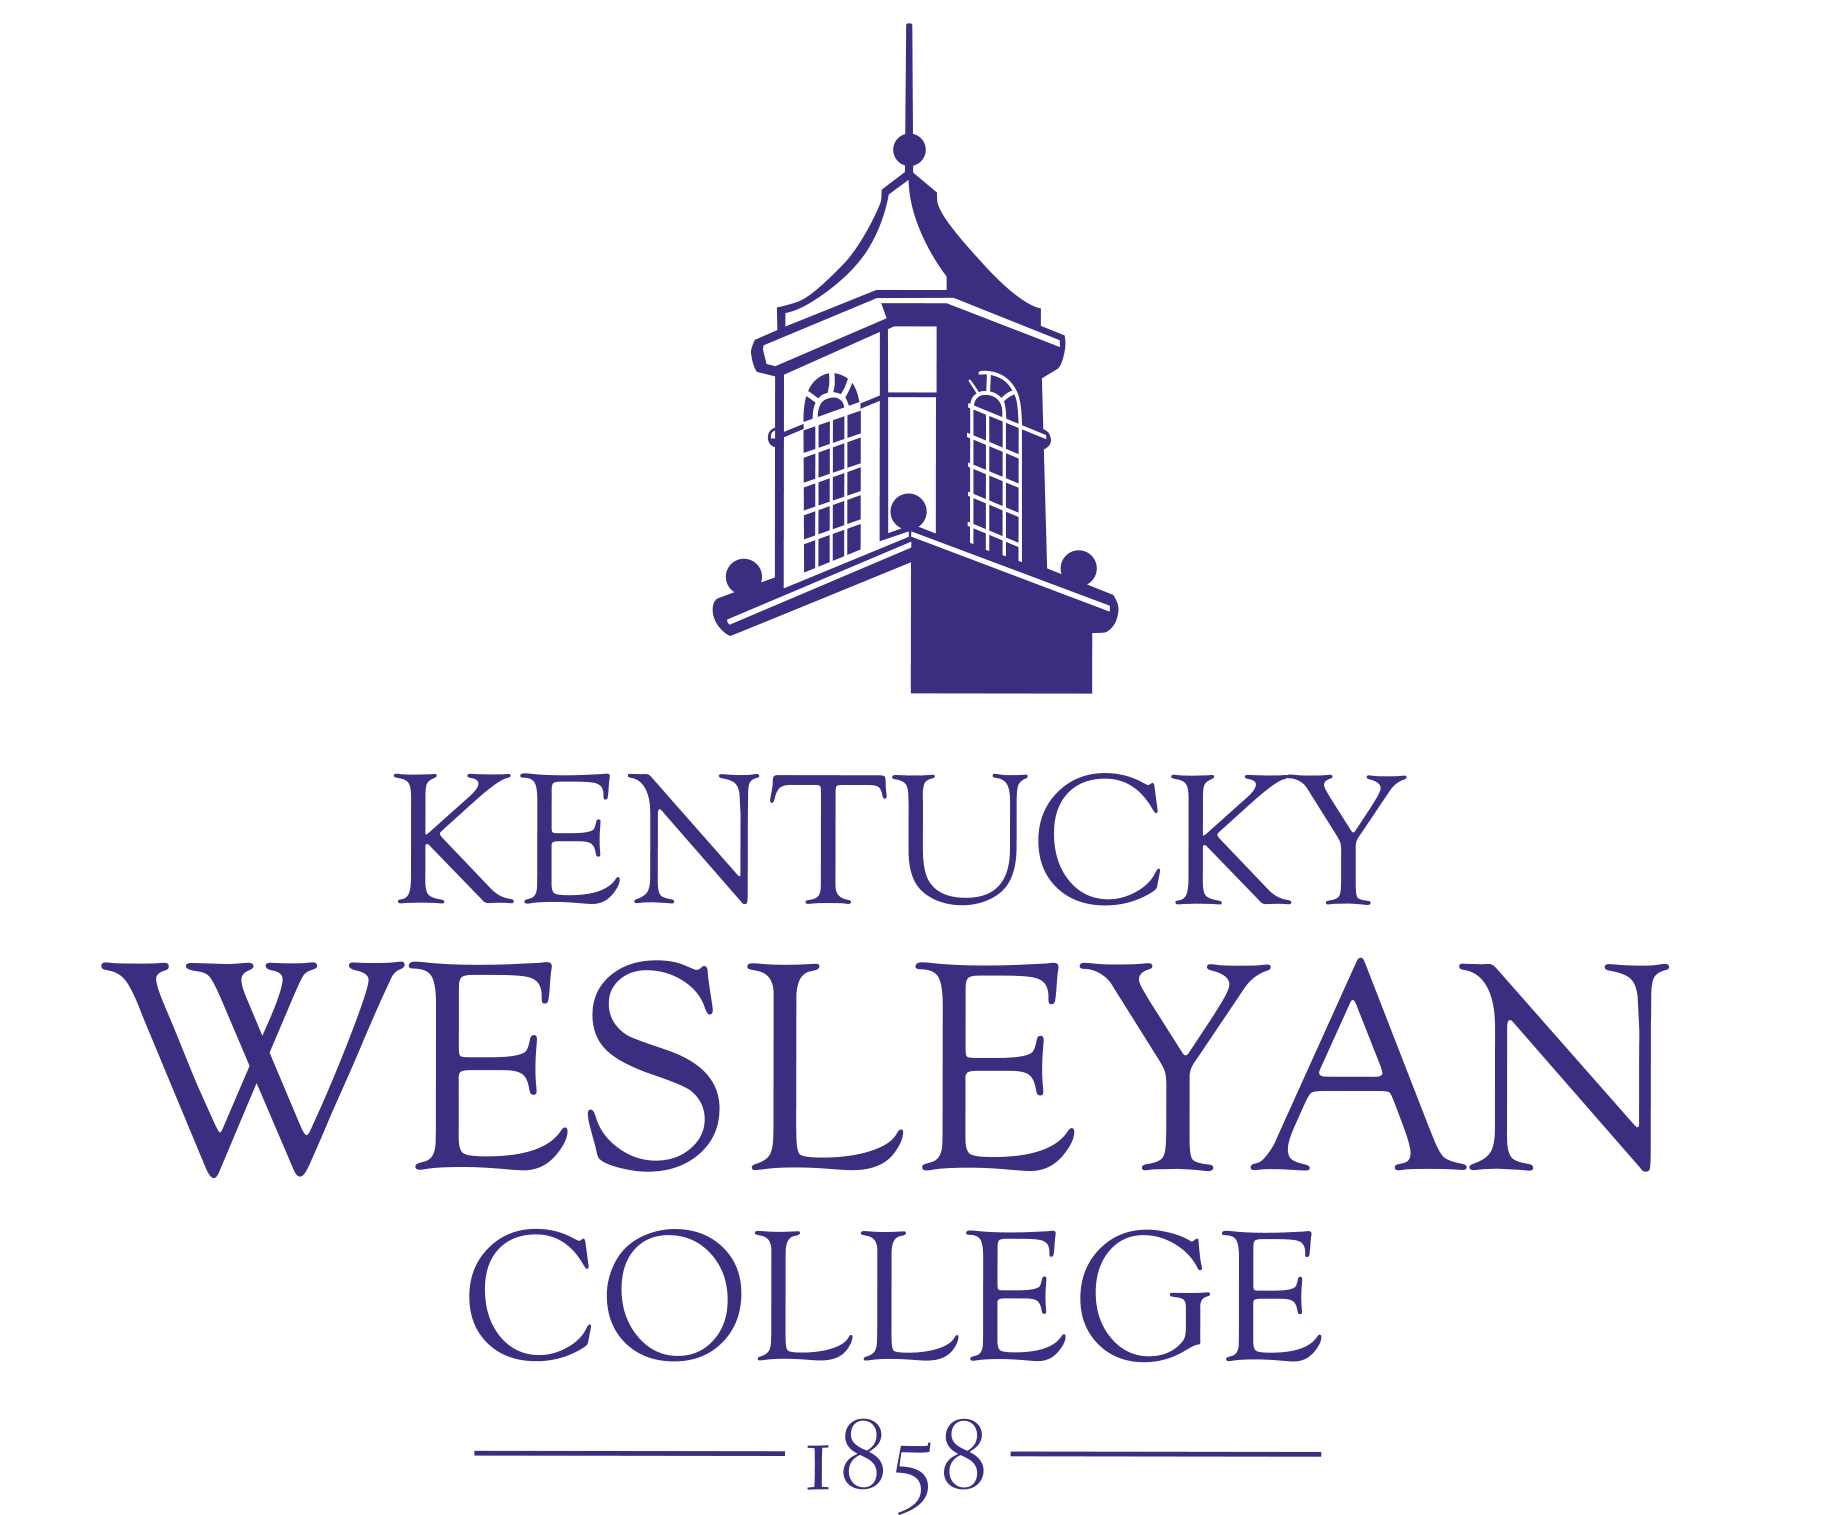 Kentucky Wesleyan College - Top 30 Best Graphic Design Degree Programs 2020